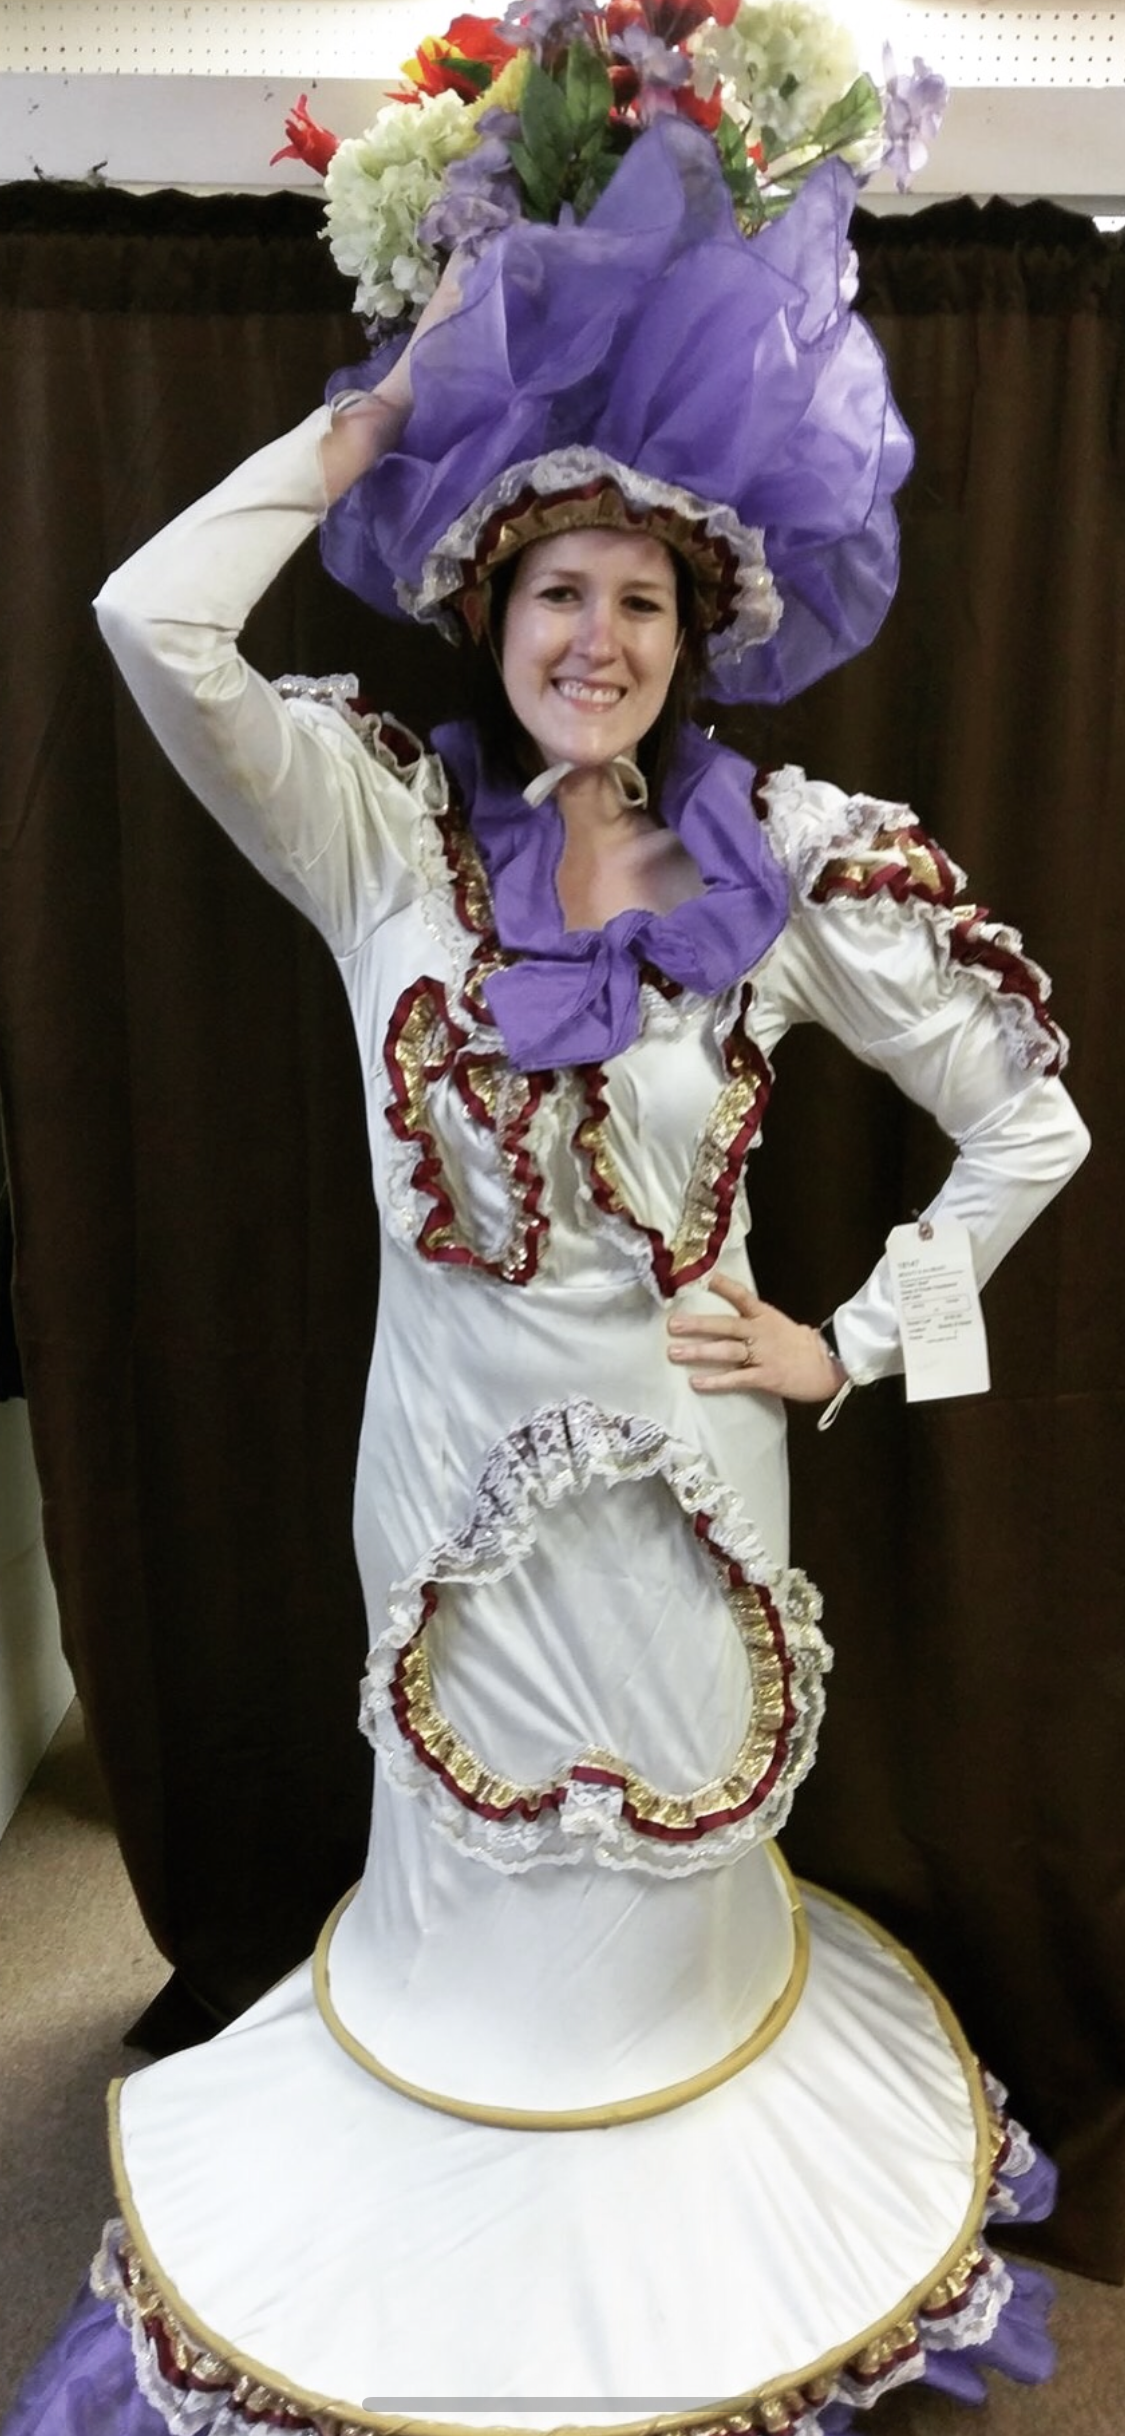 Toledo Wedding Photographer at Musical in Costume before Show